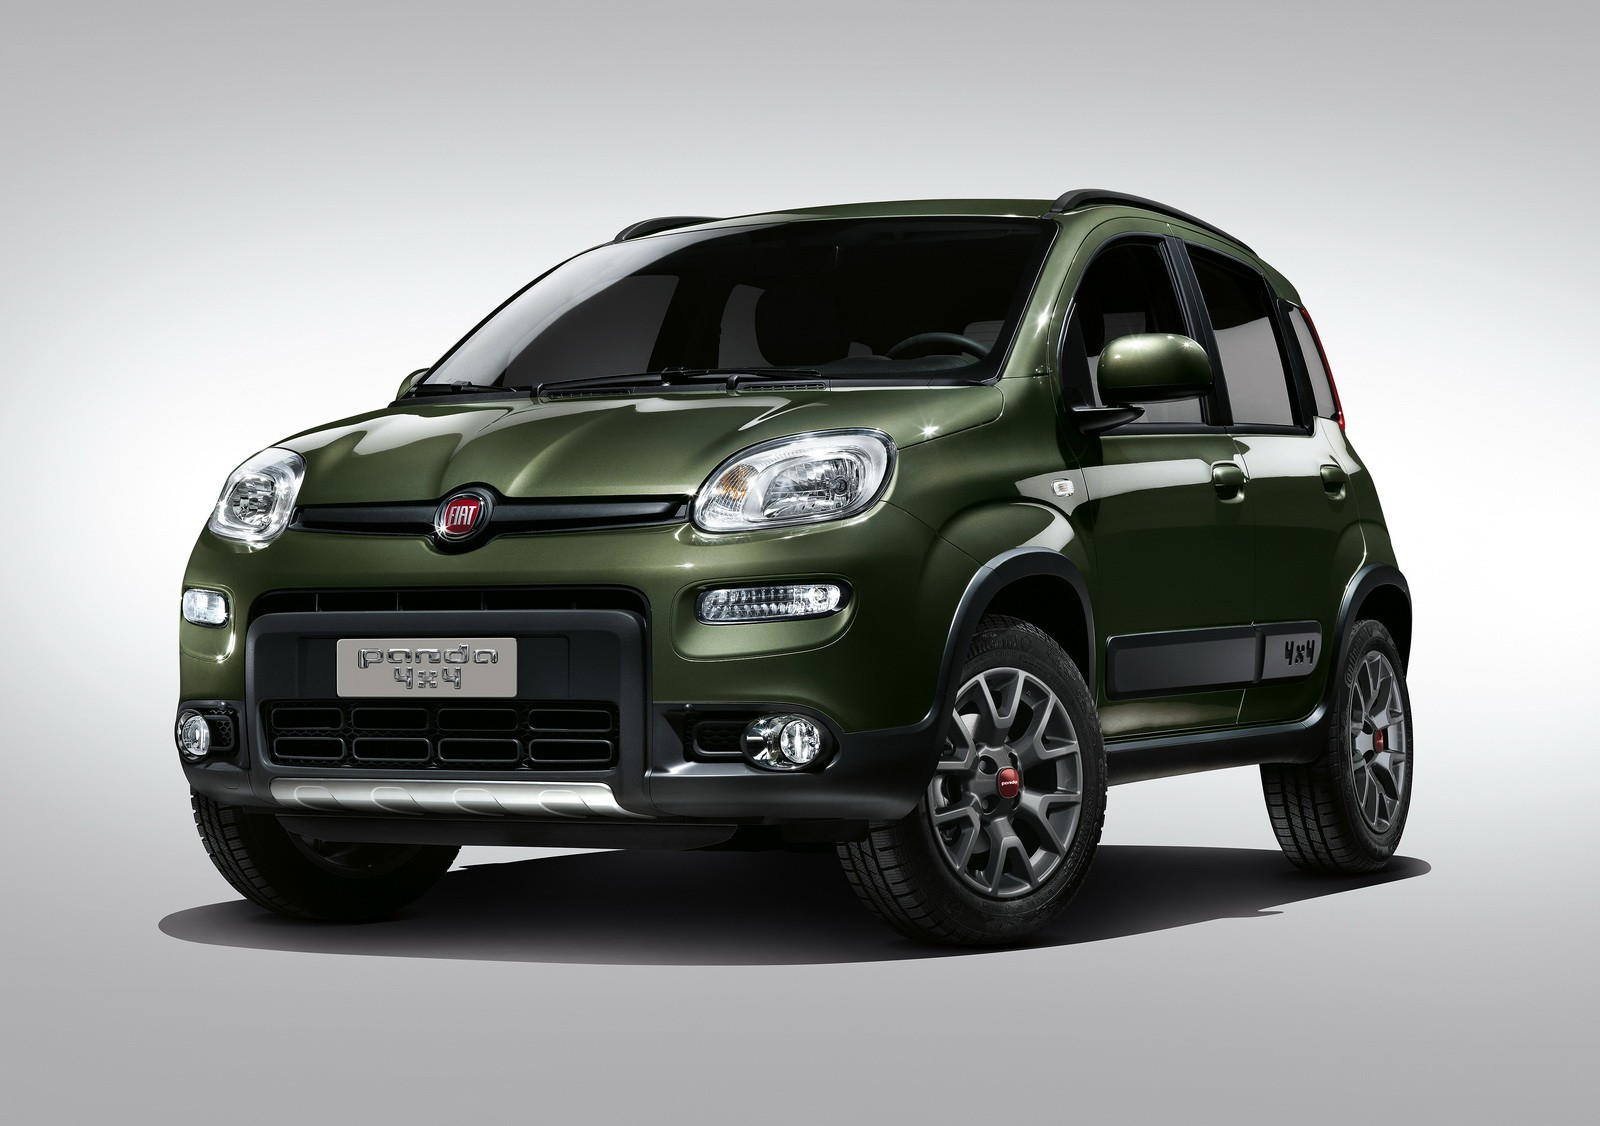 2017 fiat panda gets small updates and uconnect autoevolution. Black Bedroom Furniture Sets. Home Design Ideas